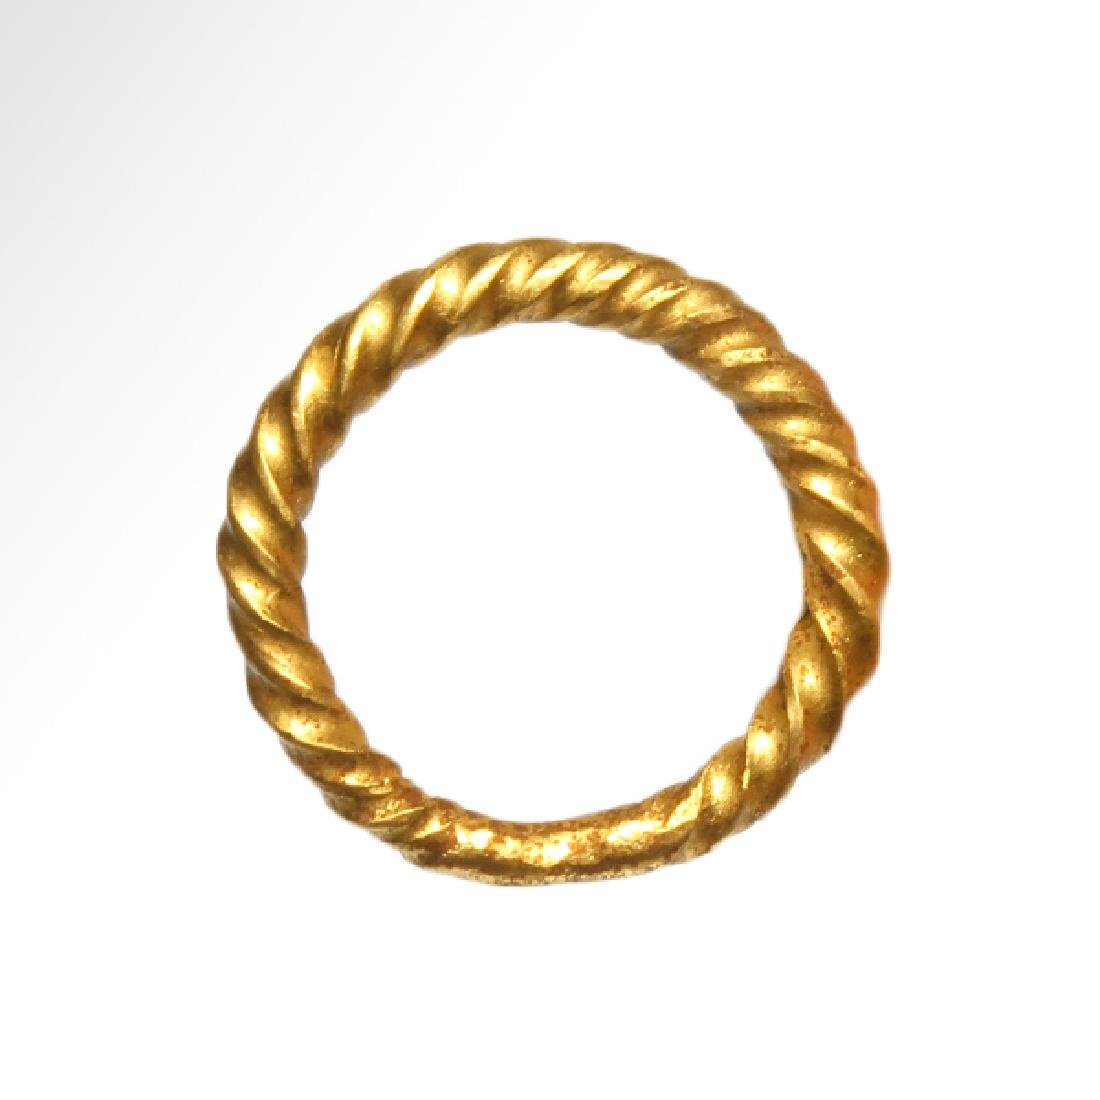 Viking Solid Gold Ring, c. 10th Century A.D.